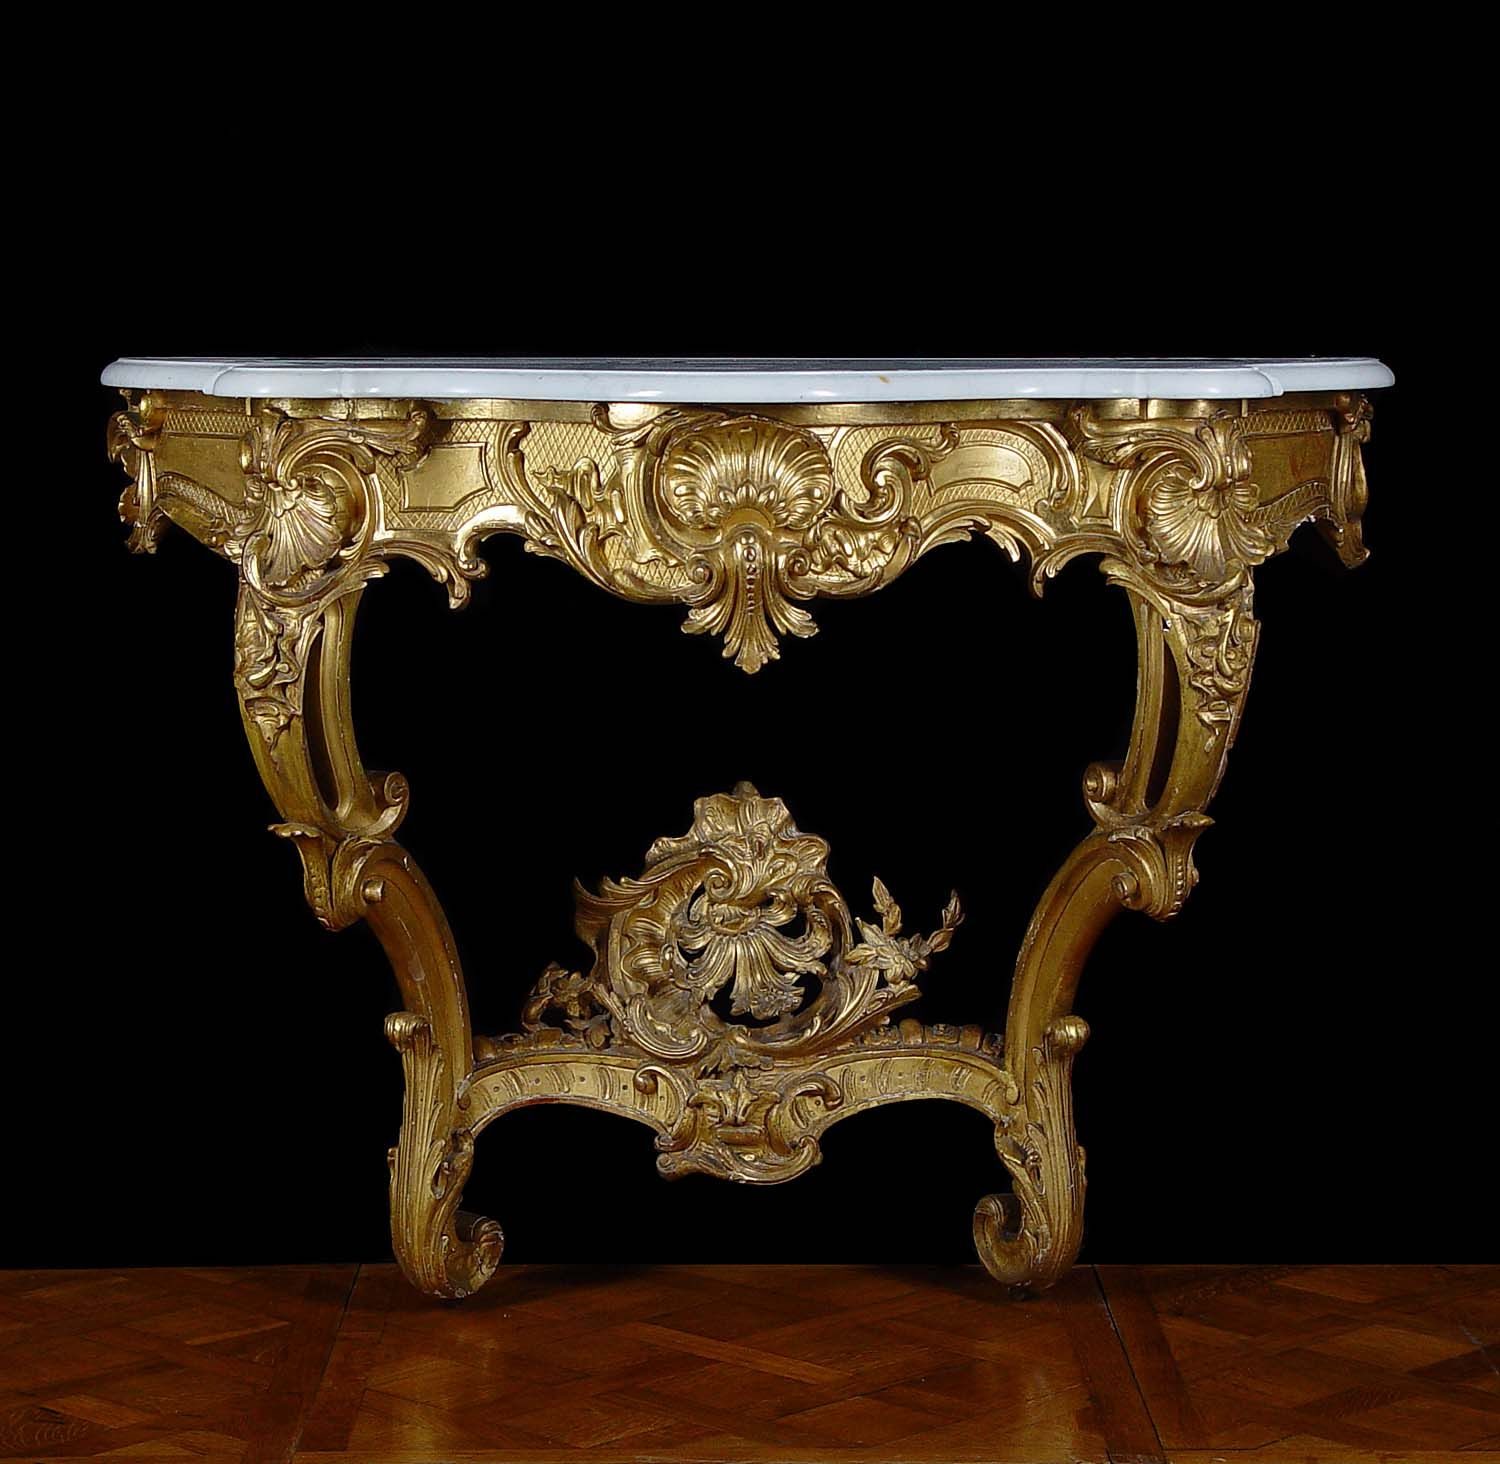 A Giltwood And Gesso Antique Console Table In The Louis Xv French Rococo Manner With High Relief S Rocaille Decoration On Serpentine Frieze